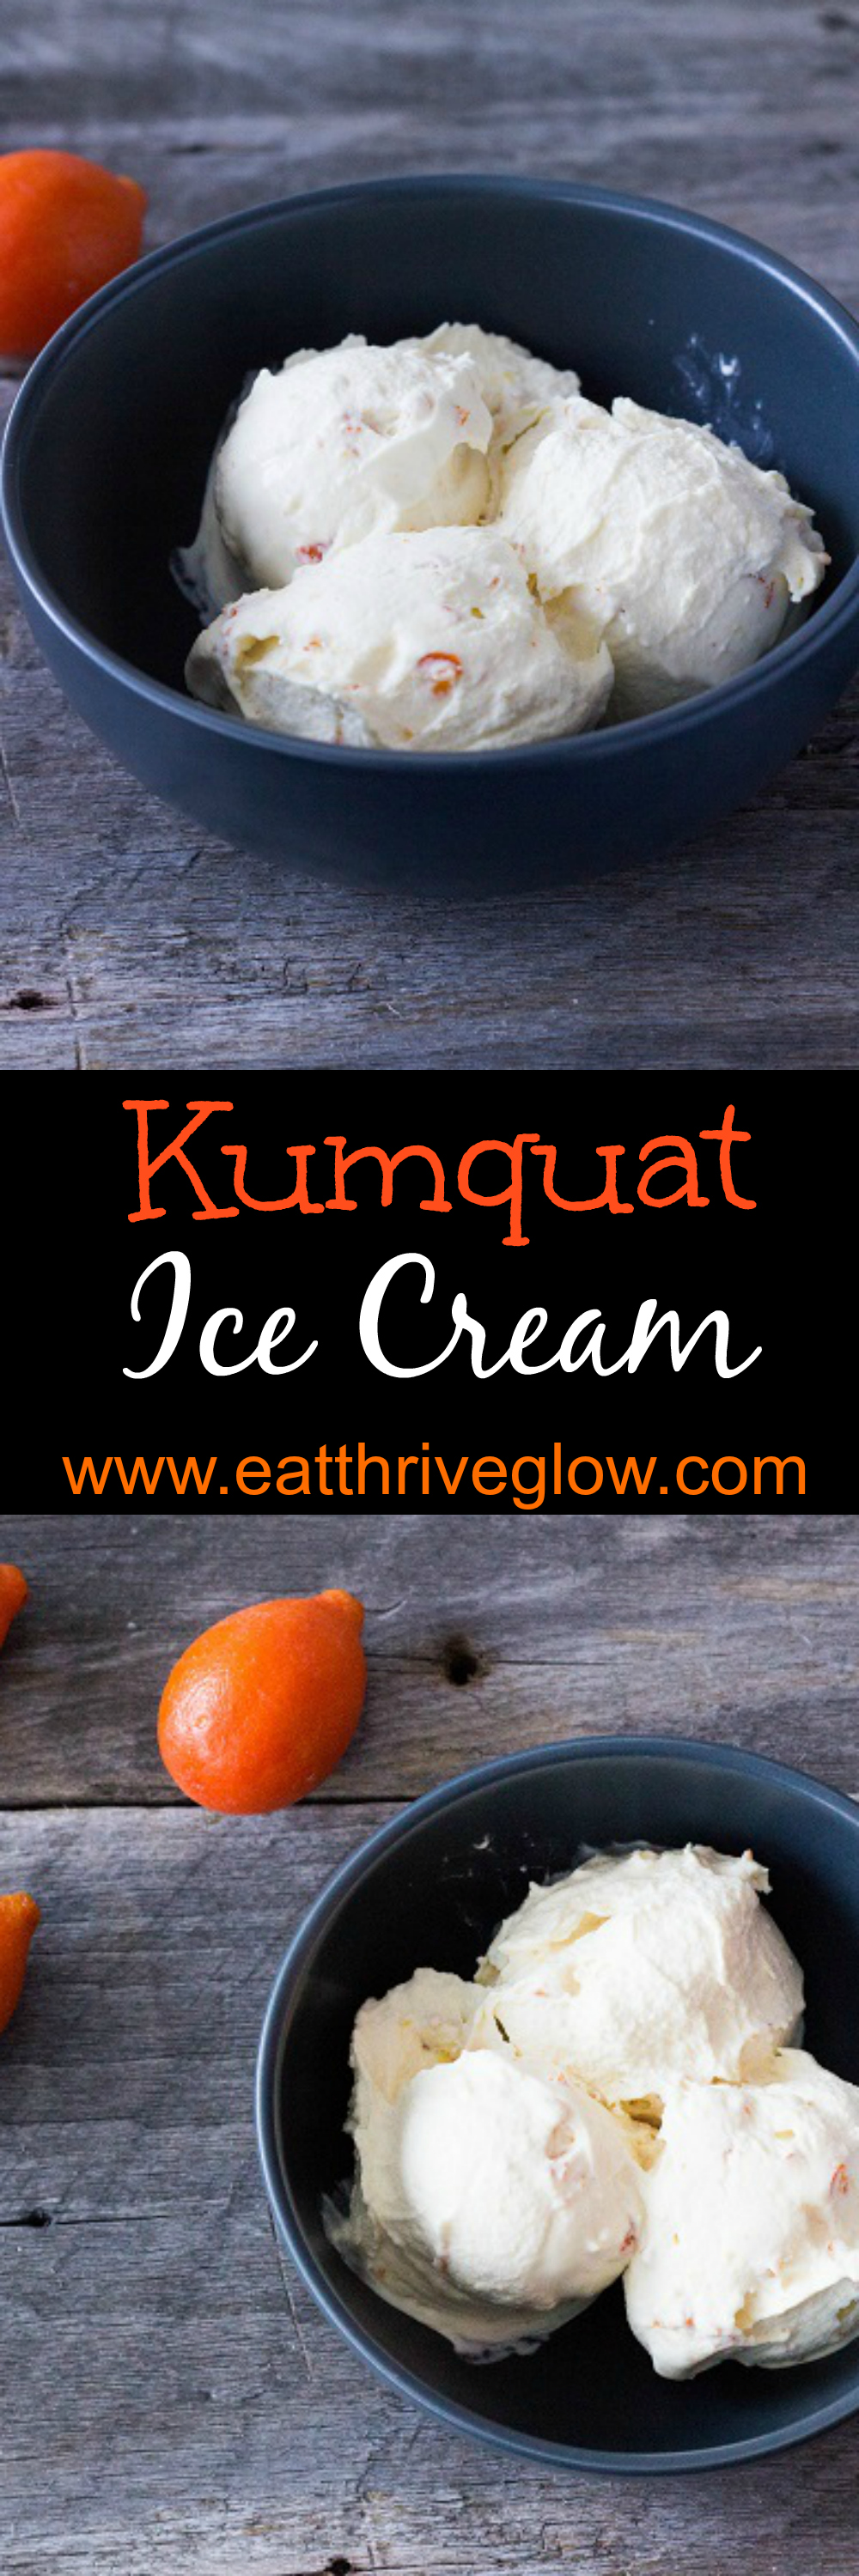 Kumquat Ice Cream - Eat Thrive Glow